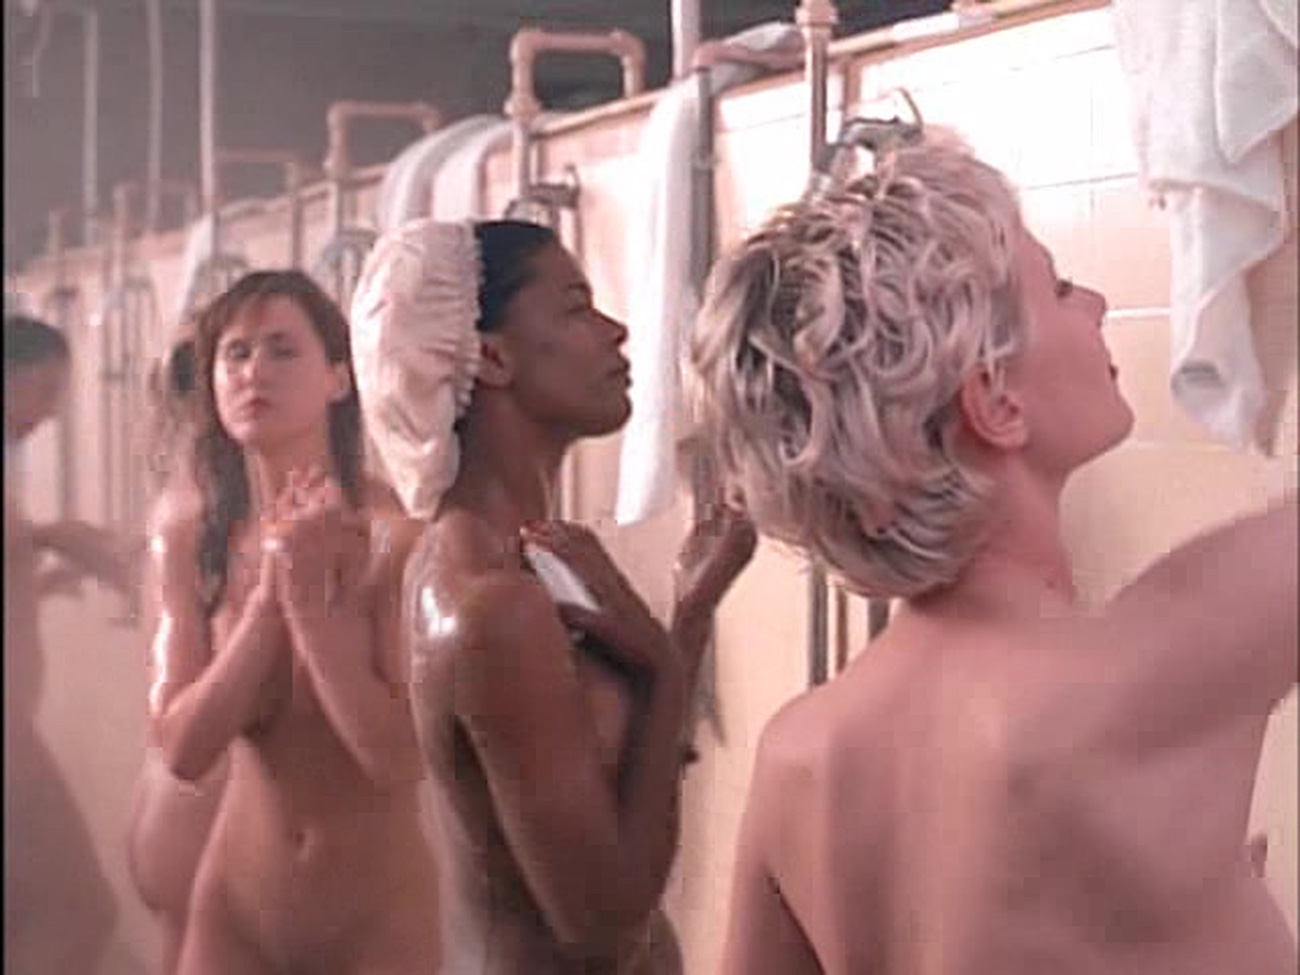 Hottest Prison Heat Nudity, Watch Clips See Pics